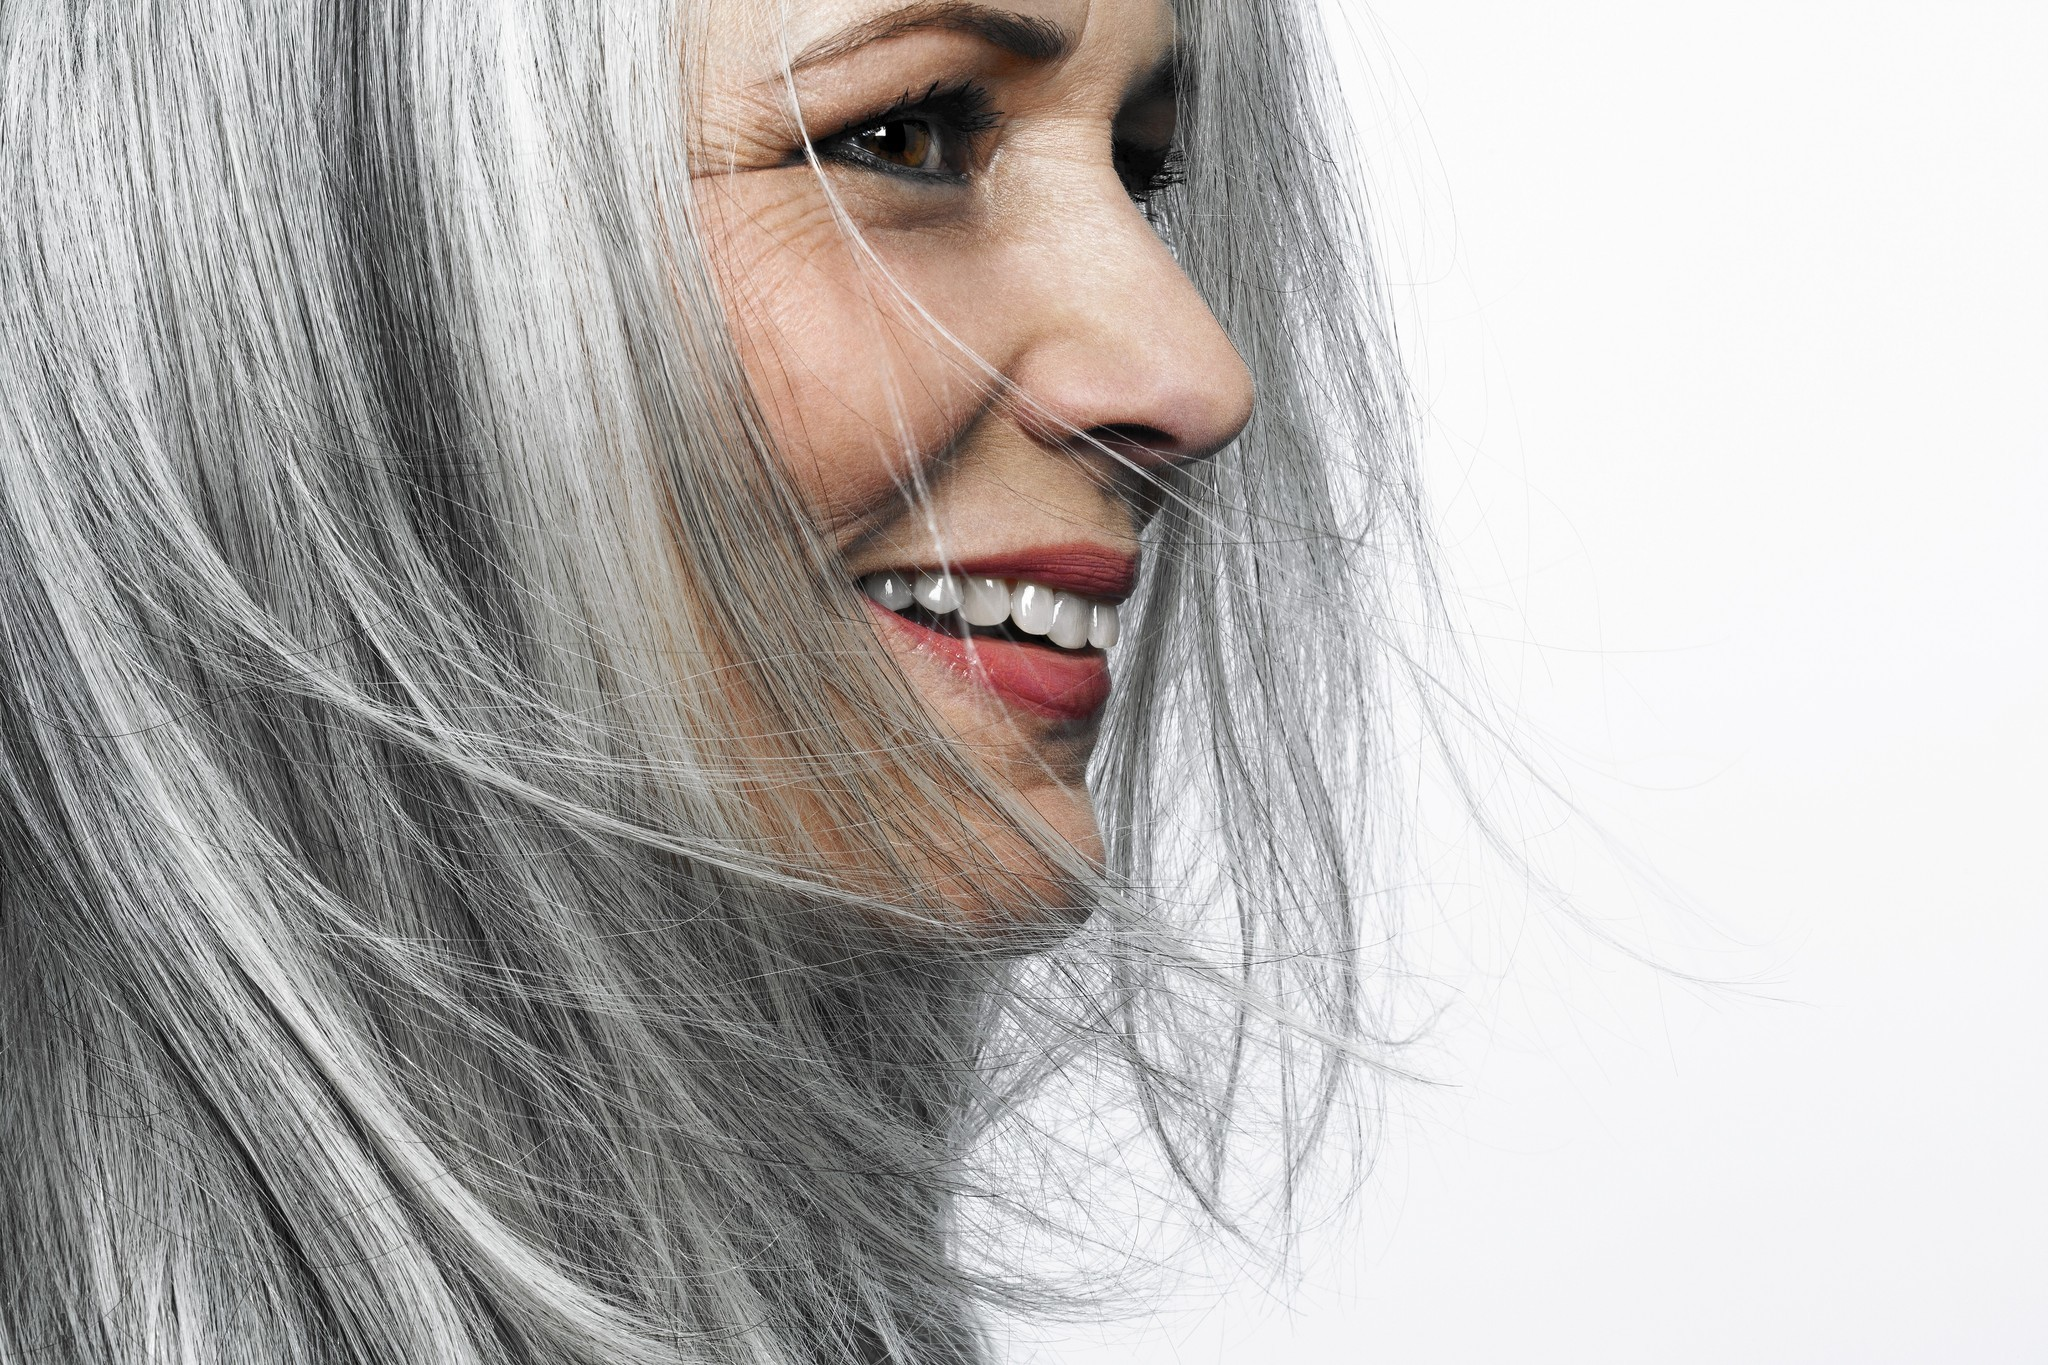 Ditching dye: How to go gray, gracefully - Chicago Tribune